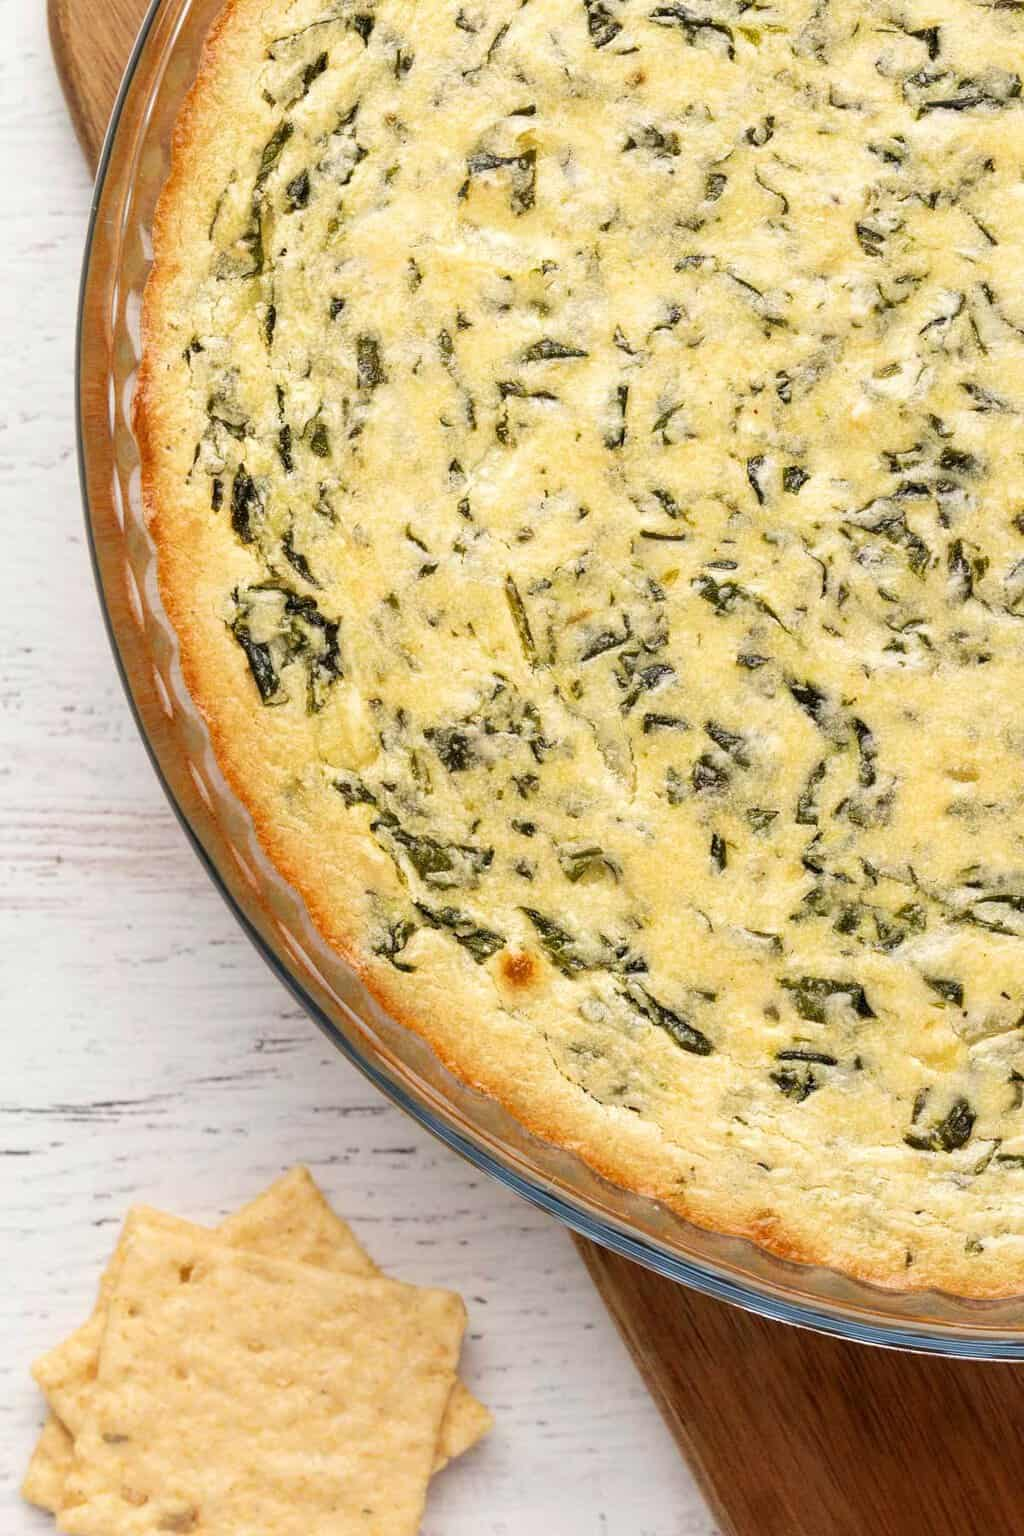 Vegan spinach dip in a round glass dish.